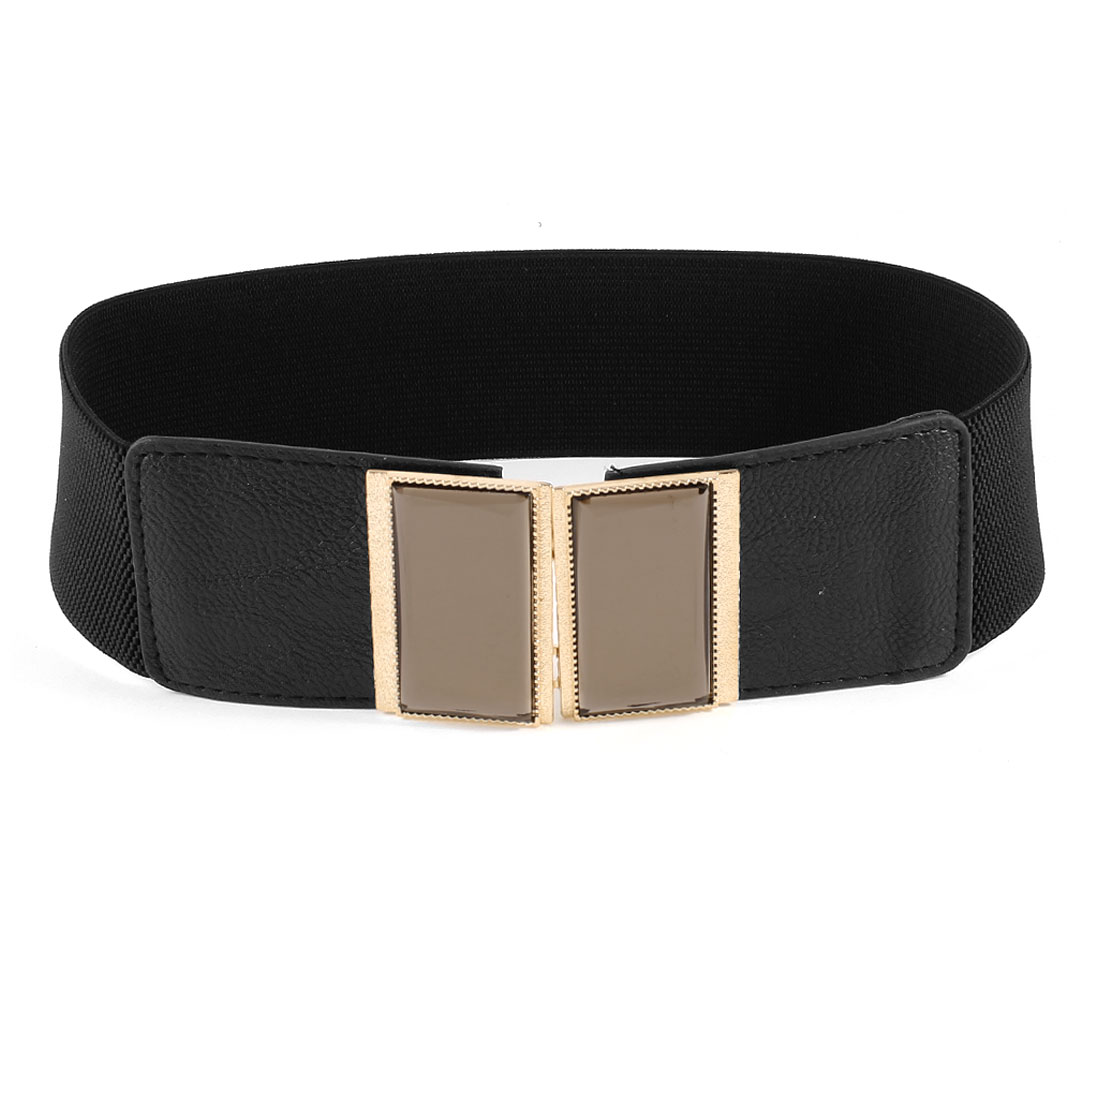 Women Plastic Crystal Accent Interlocking Buckle Stretchy Waist Belt Black